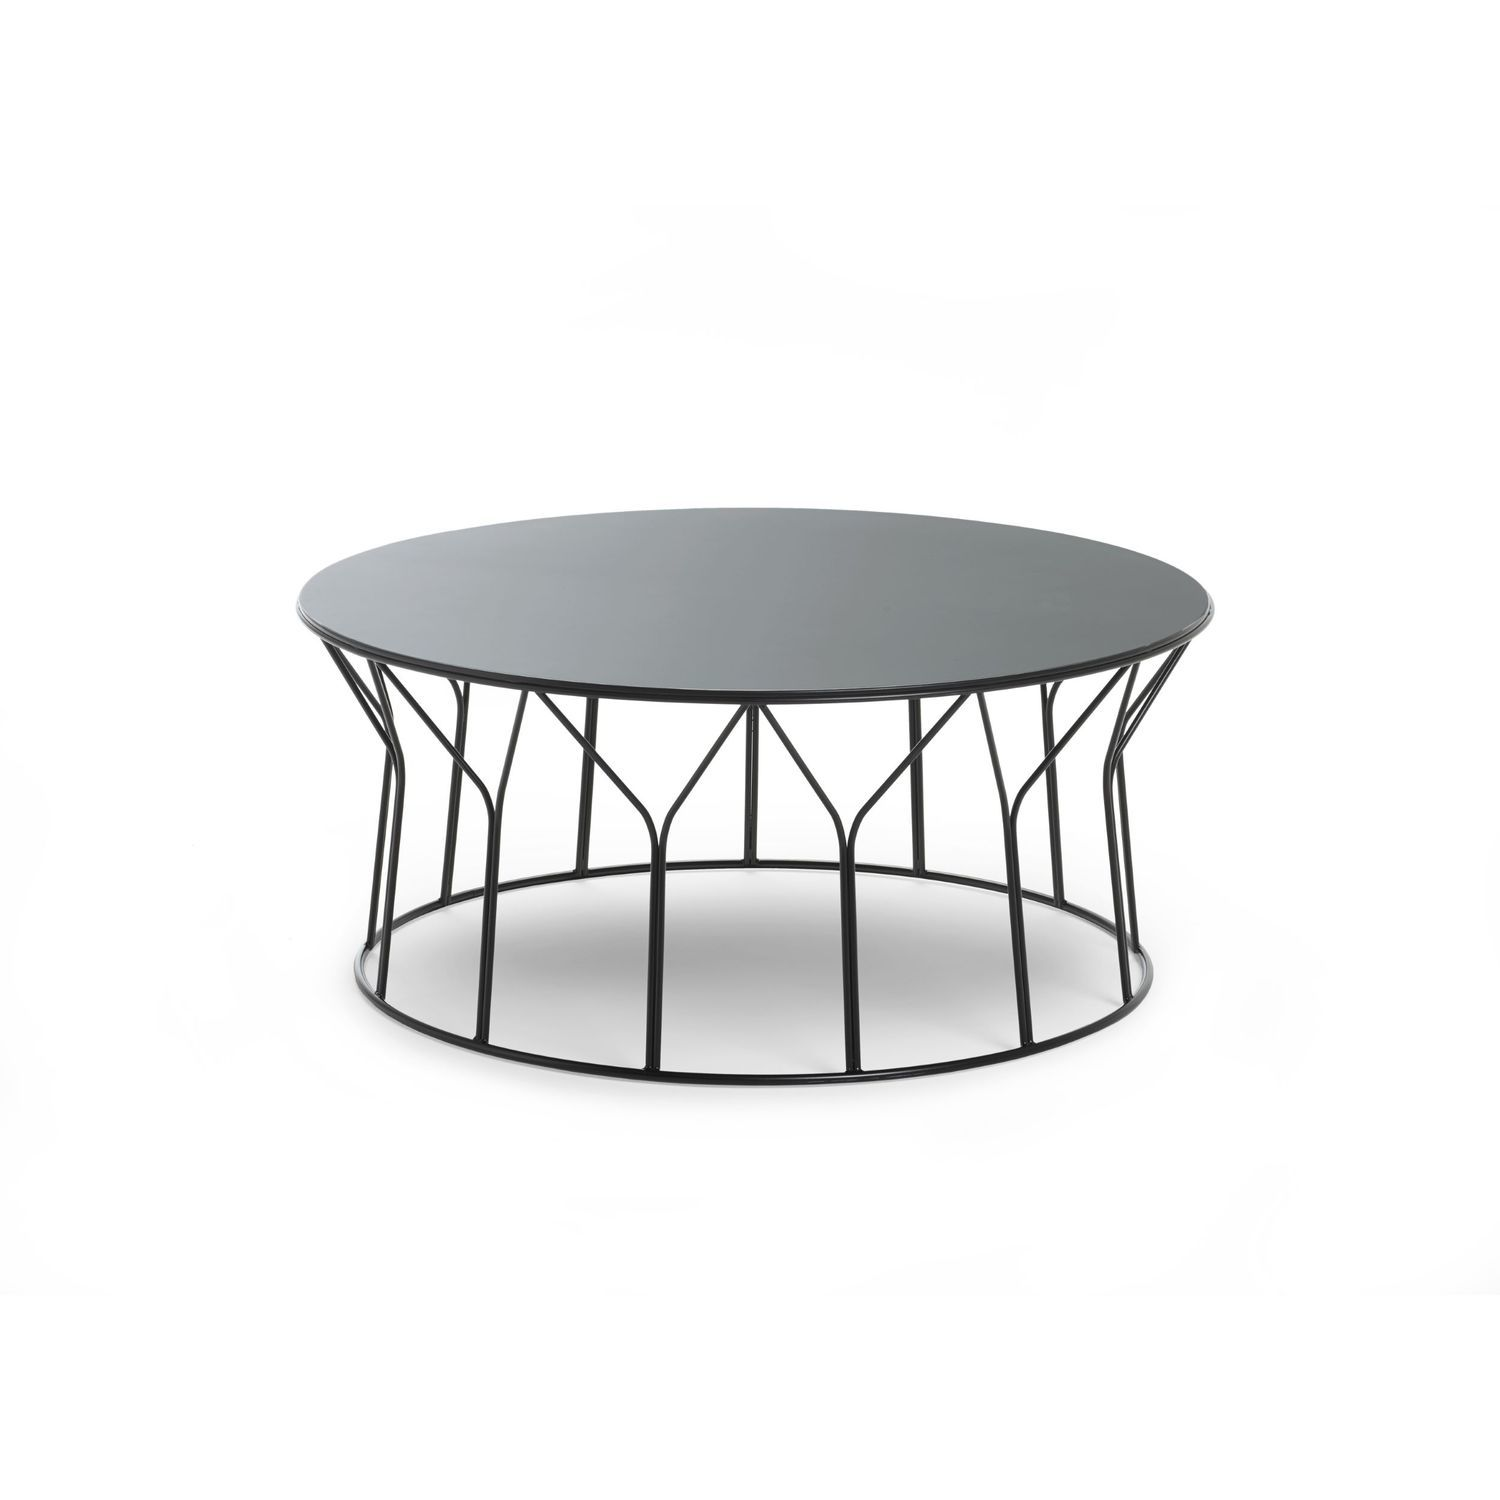 Contemporaine By Basse En Métal Mdf Table Ronde Circus iXPZuTOk